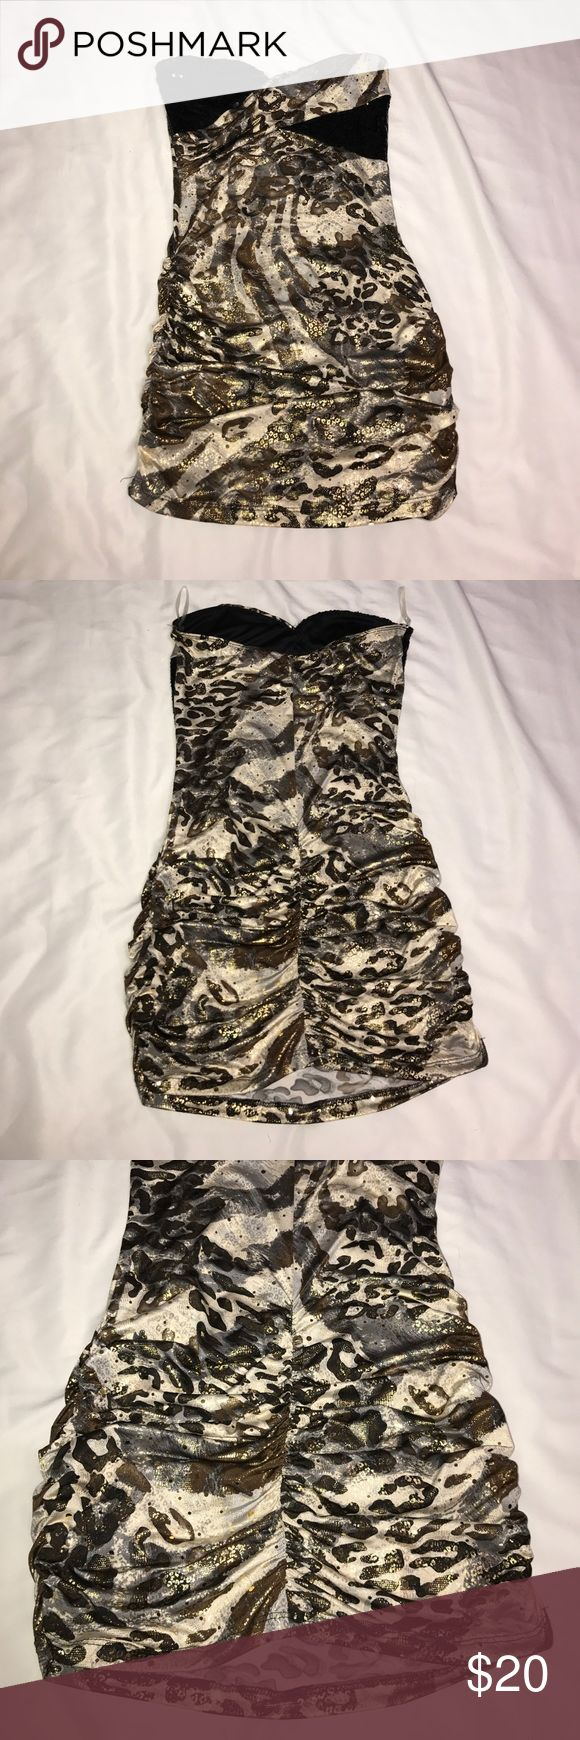 Strapless Sequined Multi Pattern Bodycon Dress Great for a night out or a homecoming! Different animal prints with sequins and shimmer. Very comfortable! The sides and back are ruched for a stunning fit. Size medium but I usually wear a size small and only wore this once. Carolina USA Dresses Mini